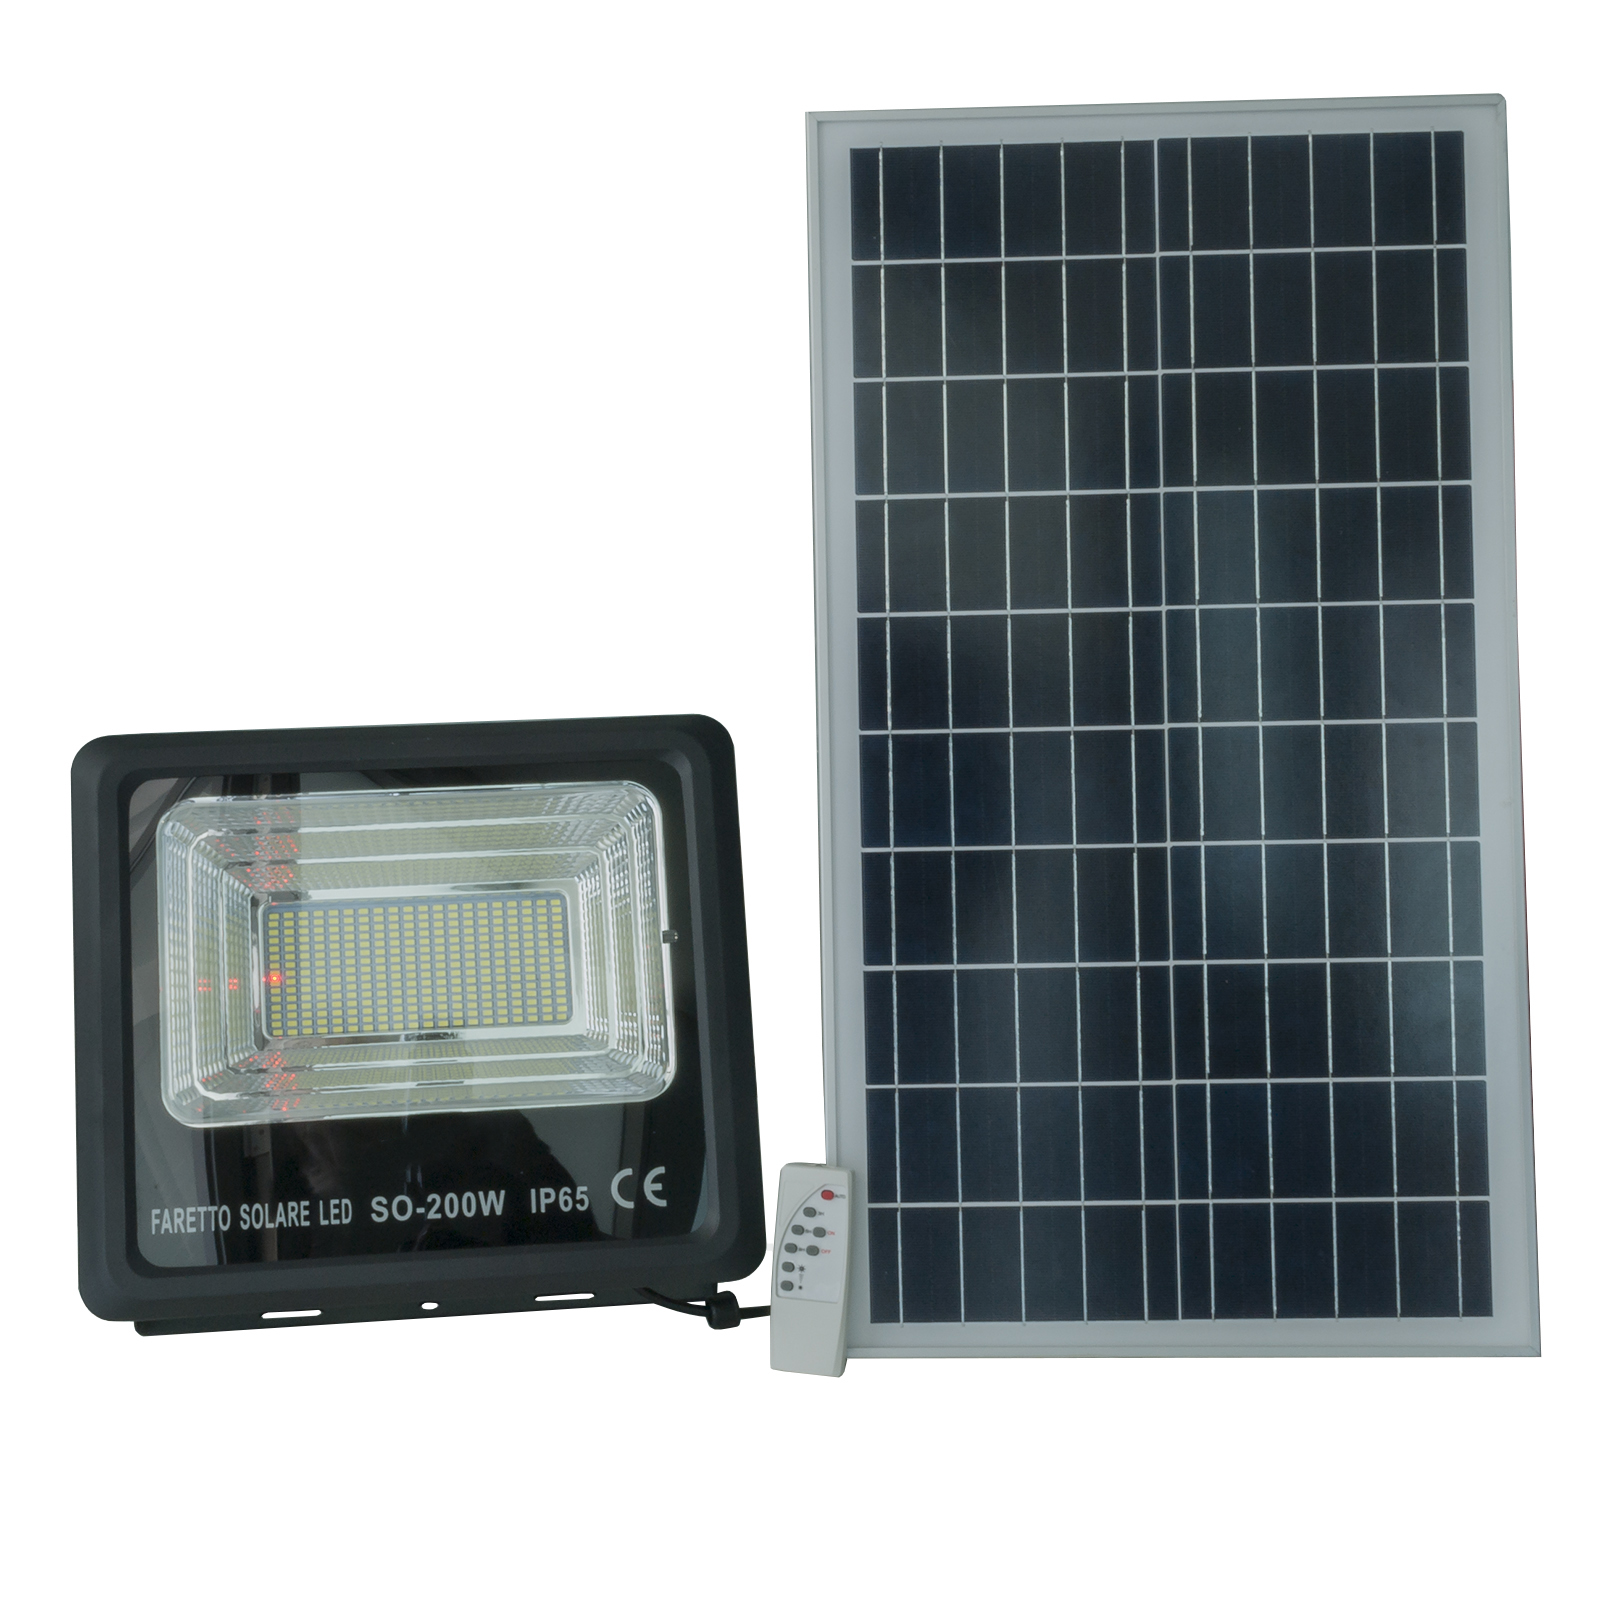 LED floodlight 200W solar twilight sensor IP65 photovoltaic panel and remote control